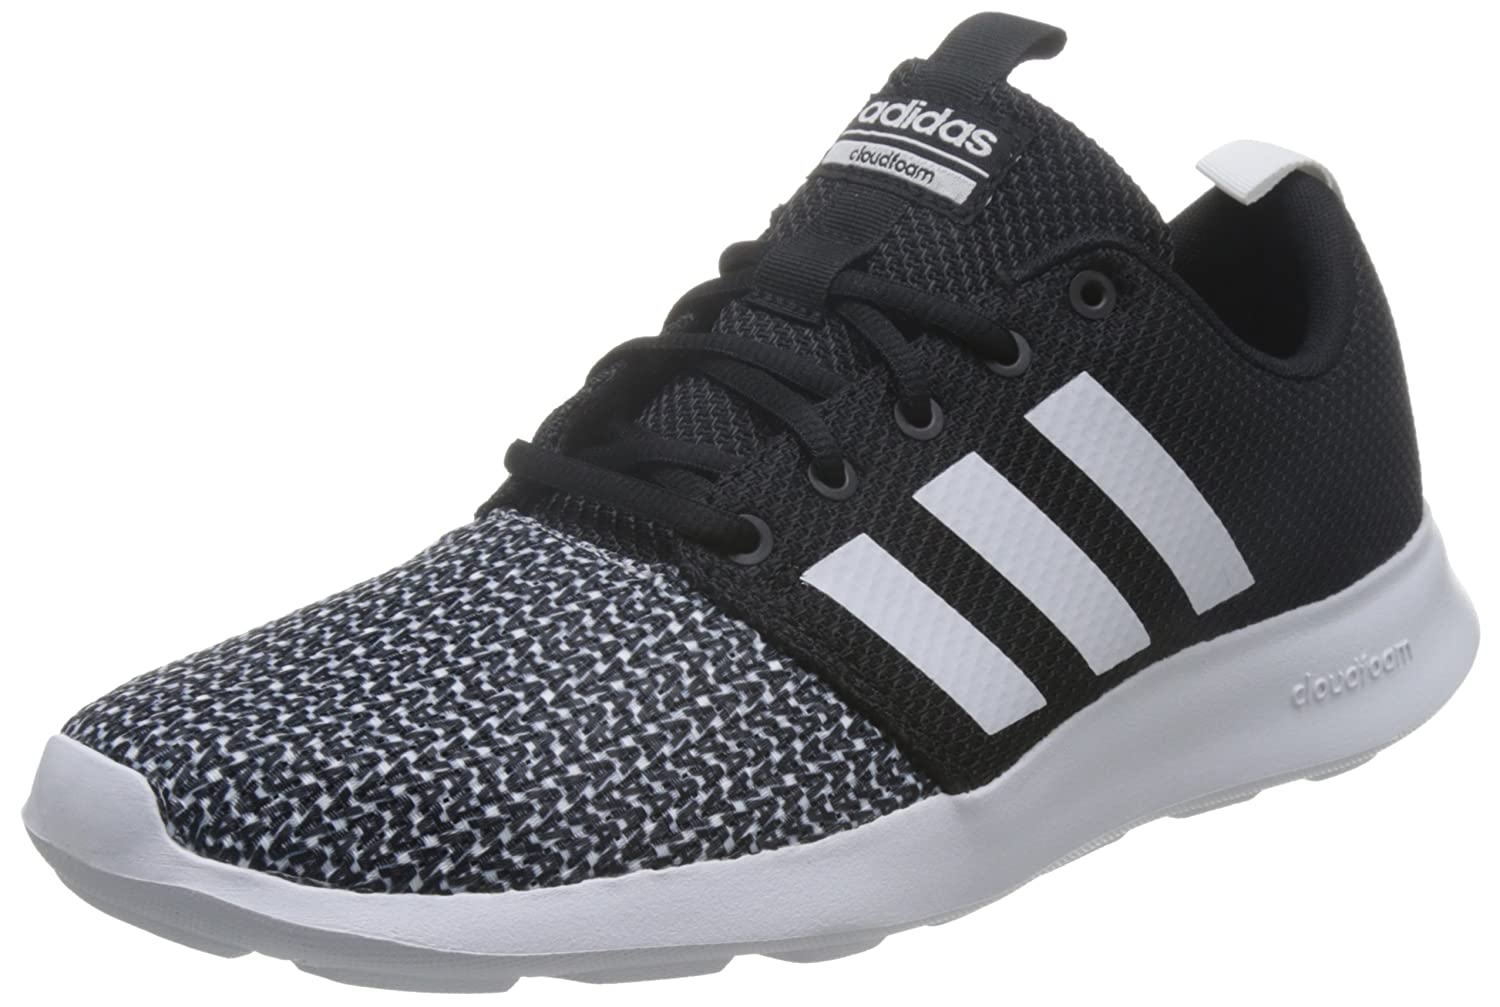 promo codes detailing incredible prices adidas Men's Cf Swift Racer Fitness Shoes: Amazon.co.uk ...